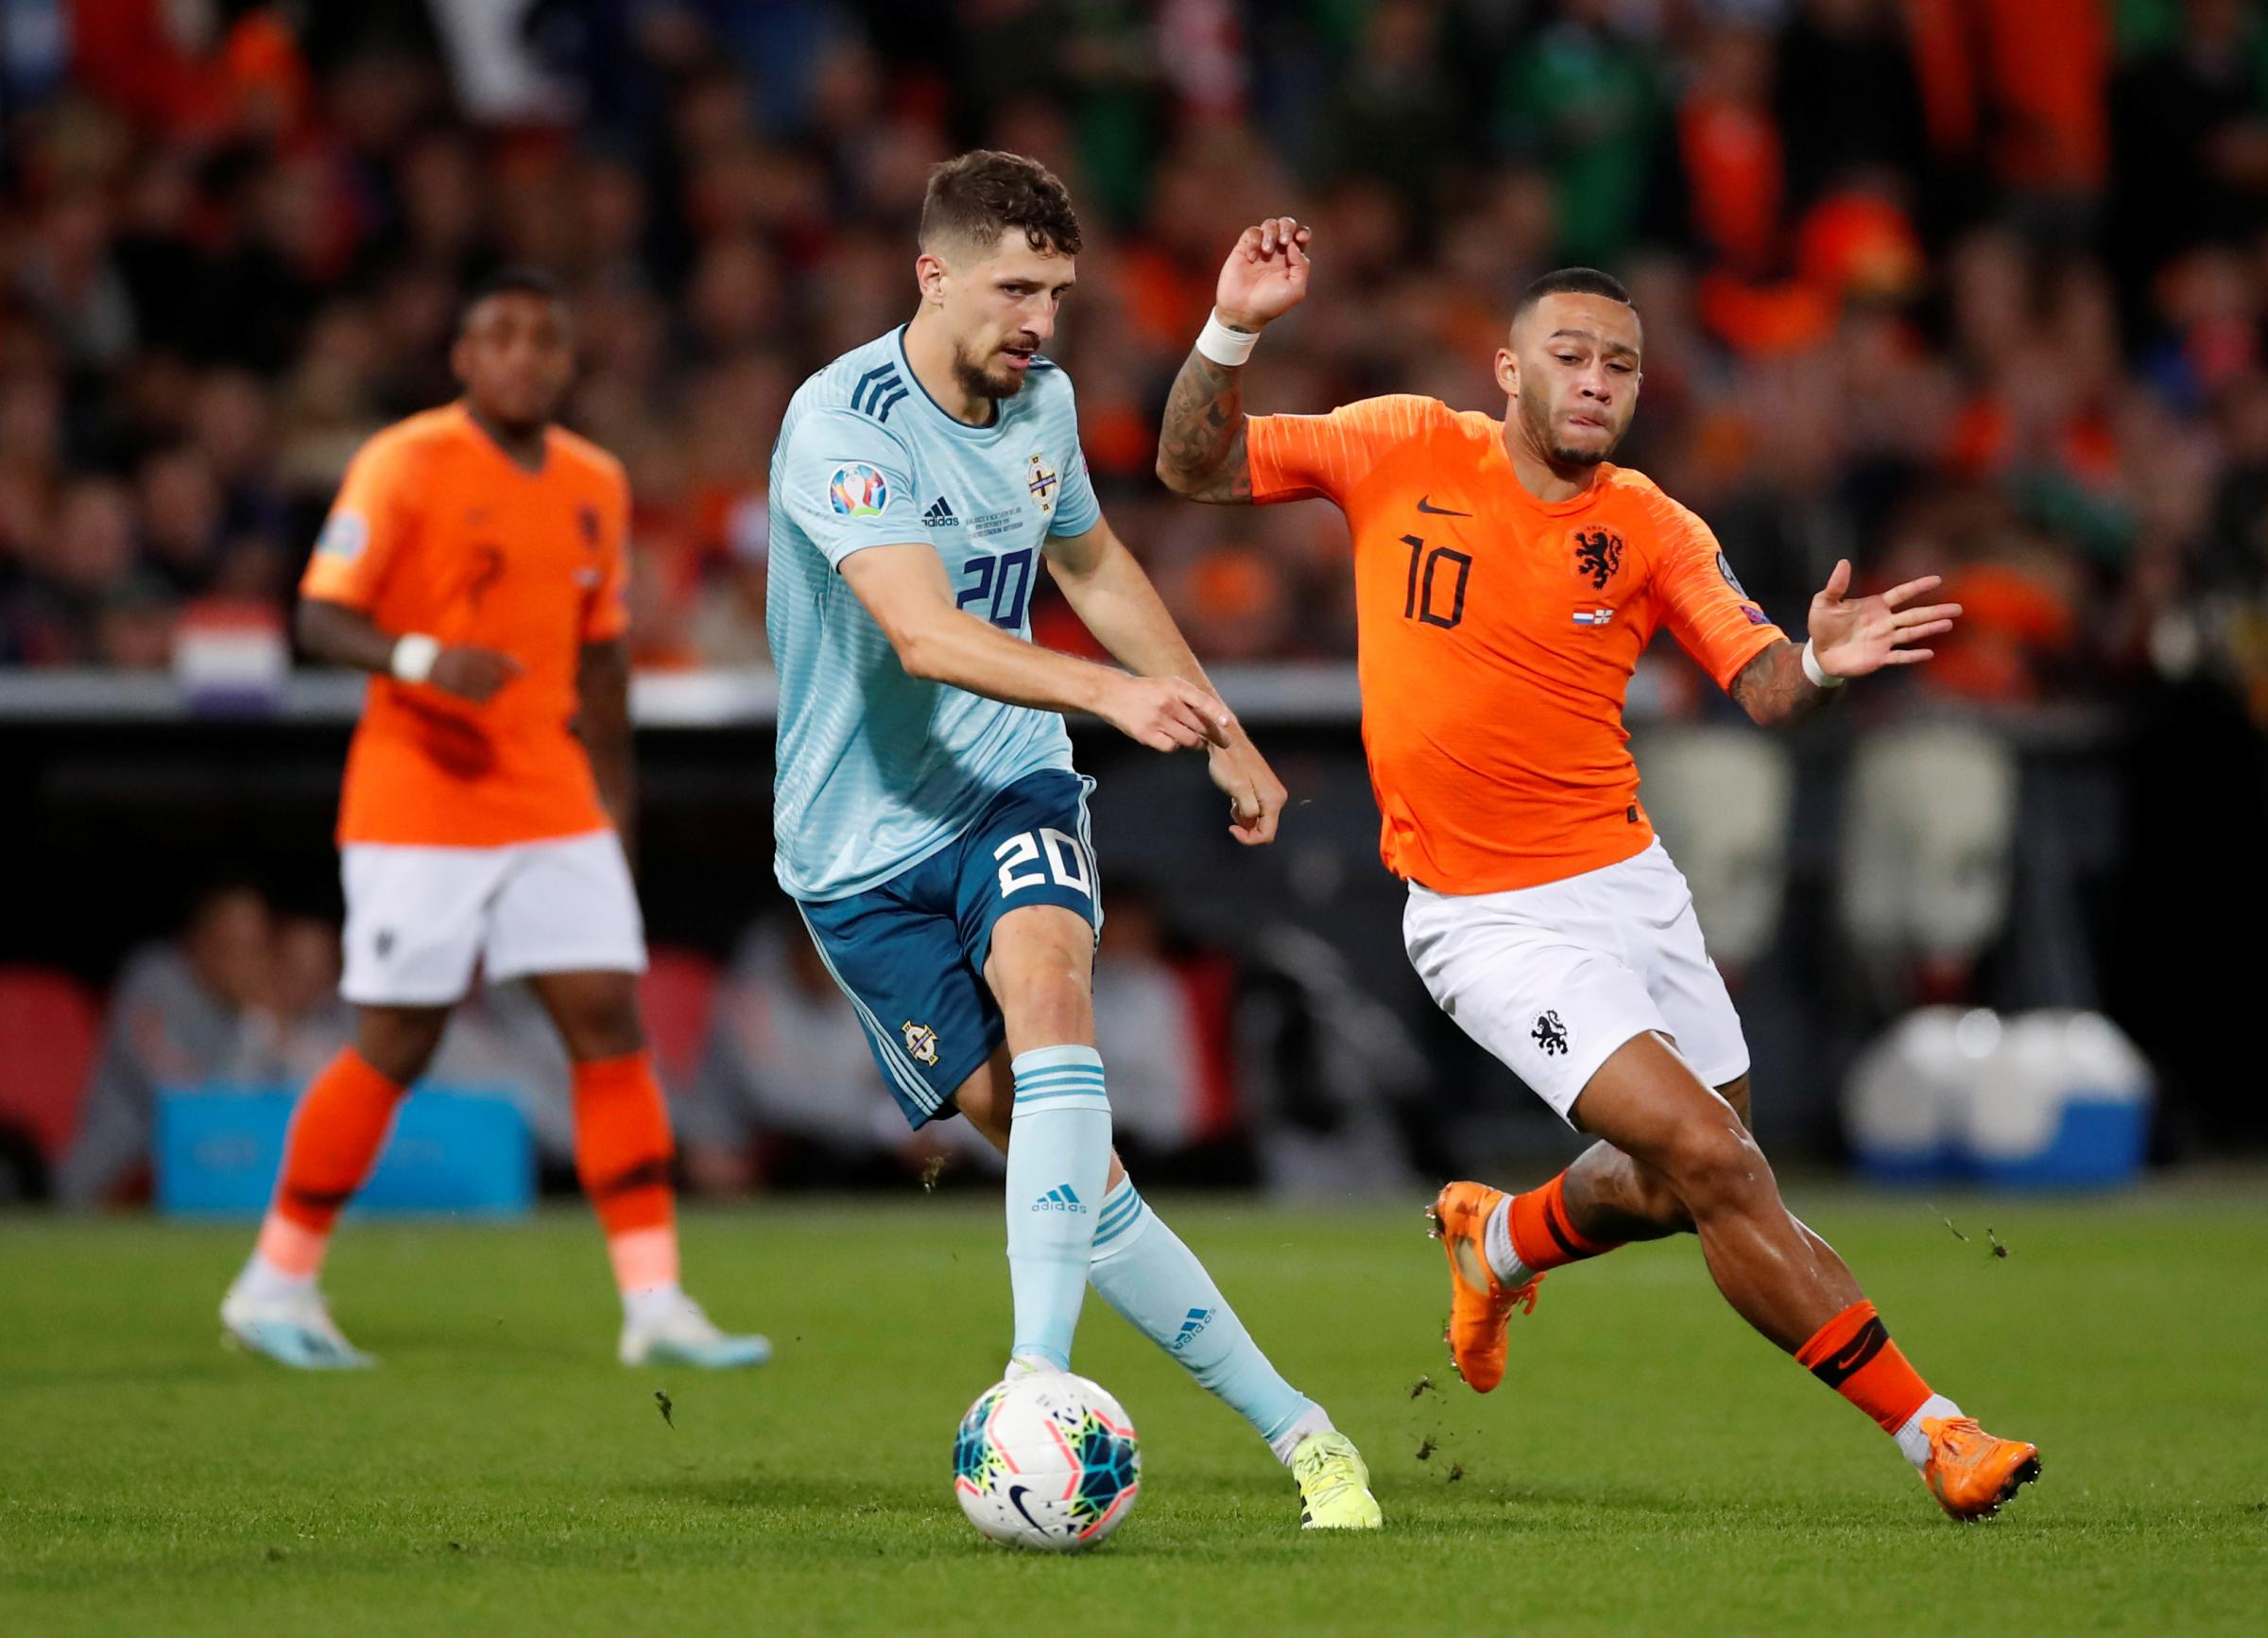 Watford's Craig Cathcart wins 46th cap as Northern Ireland suffer late Netherlands defeat